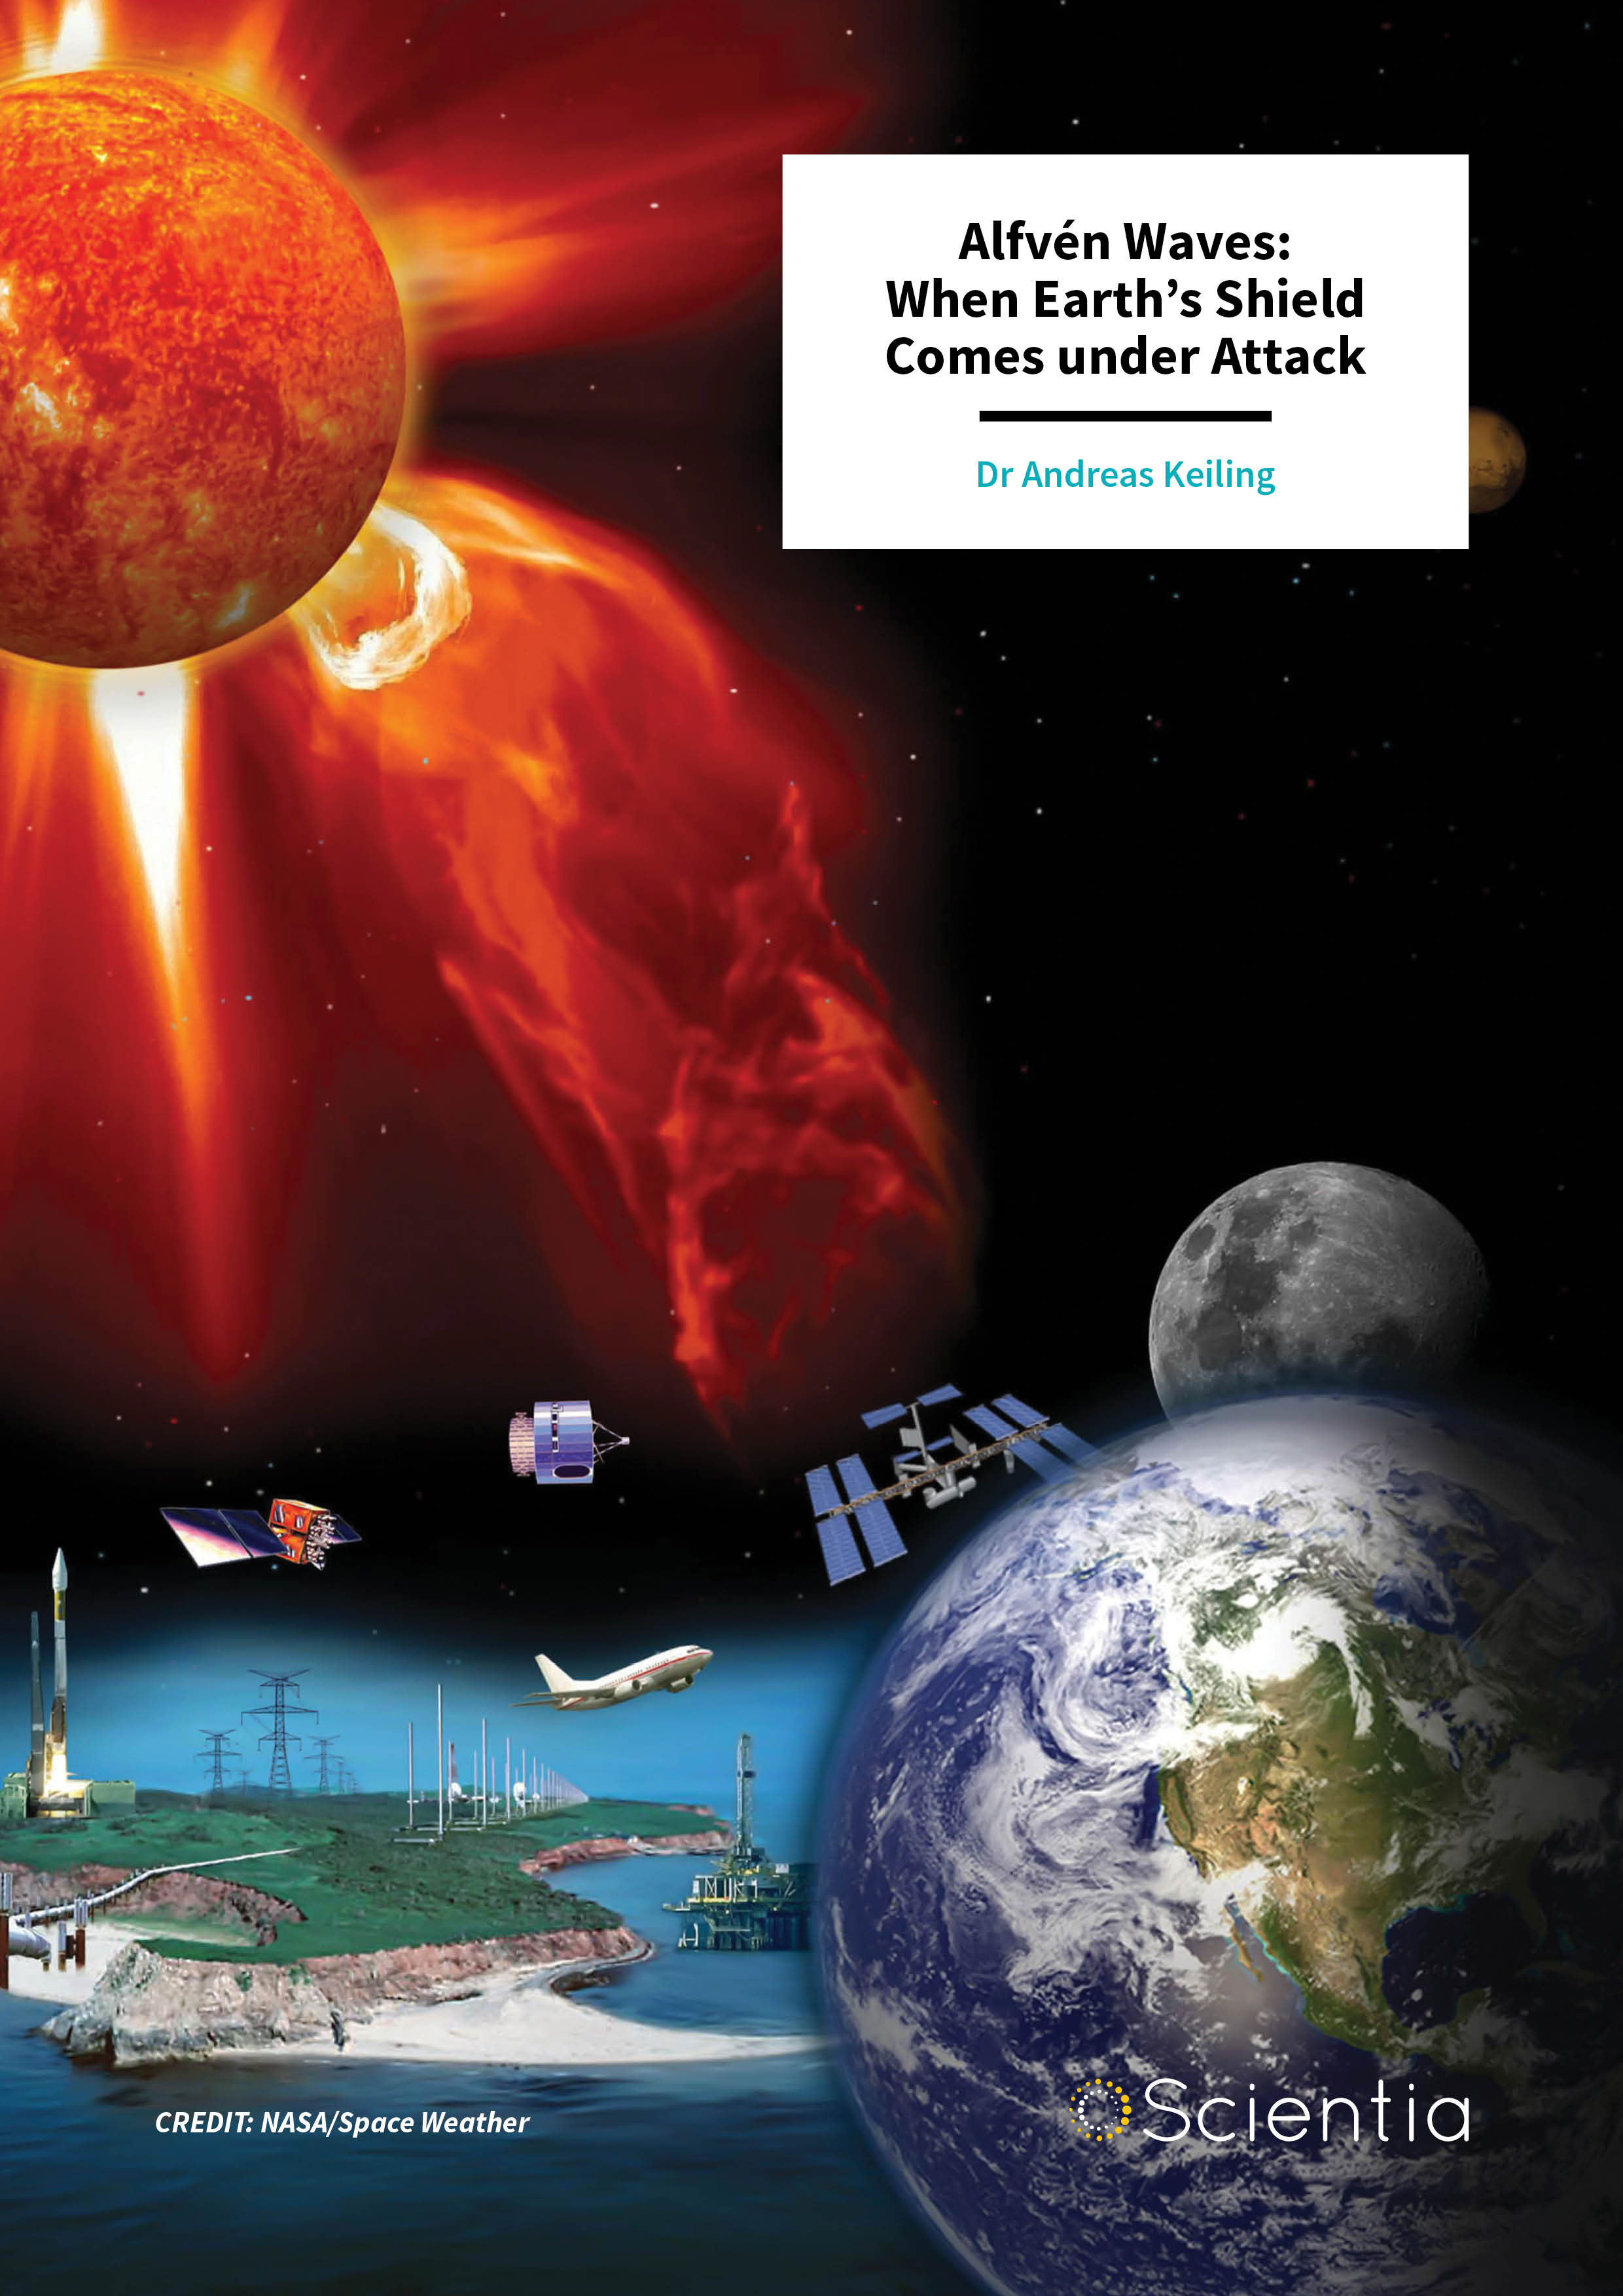 Dr Andreas Keiling – Alfvén Waves: When Earth's Shield Comes under Attack